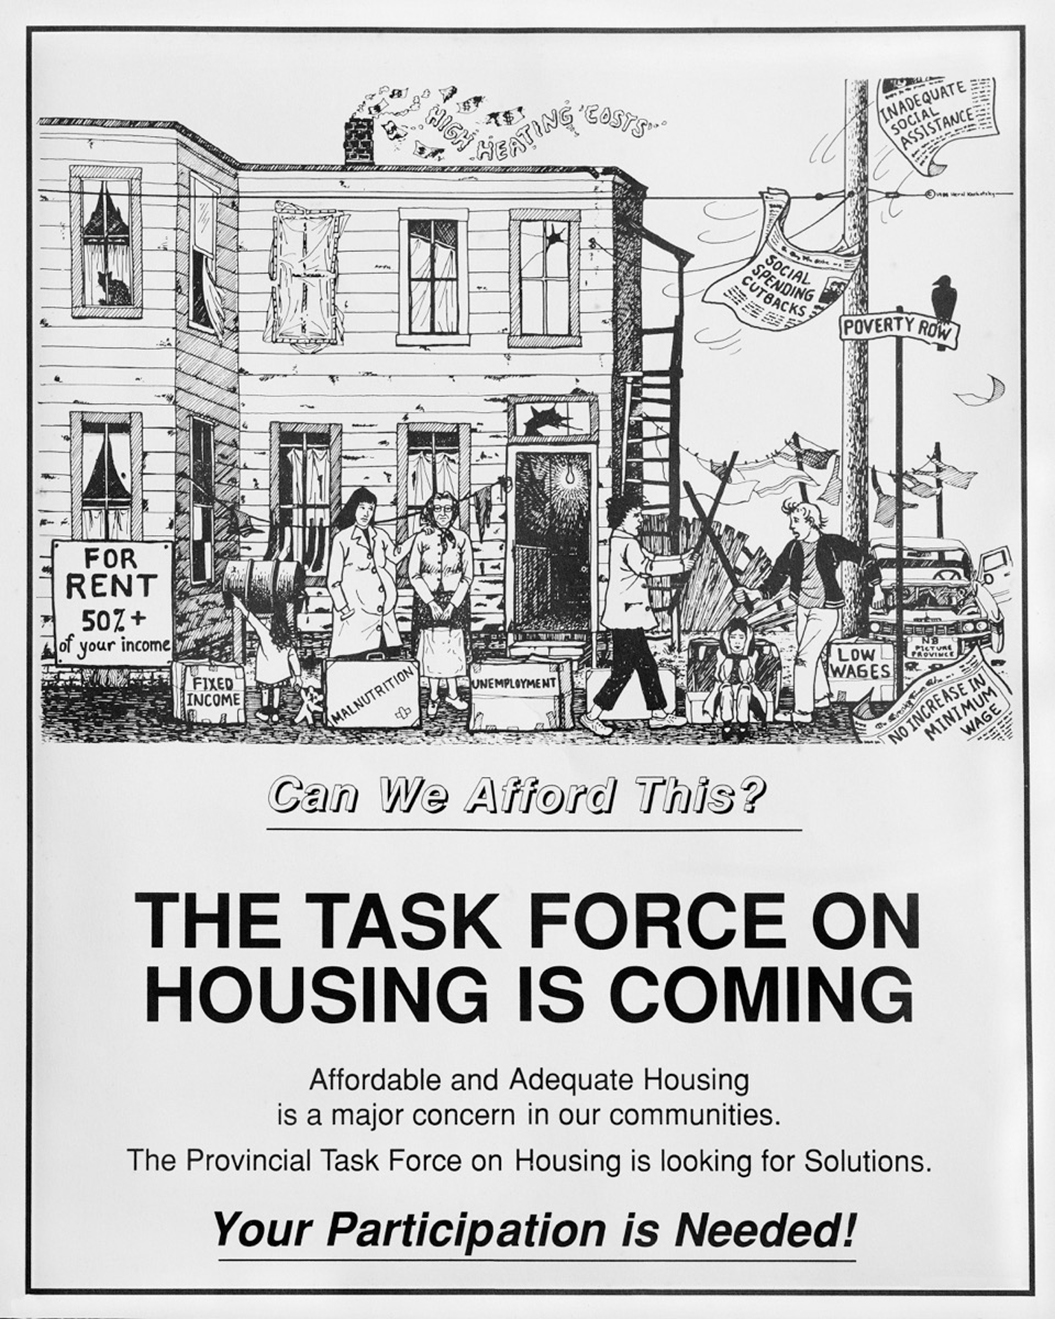 Herzl Kashetsky's poster for Housing Alternatives, 1988. Courtesy the collection of Monica Chaperlin and Robert McKee